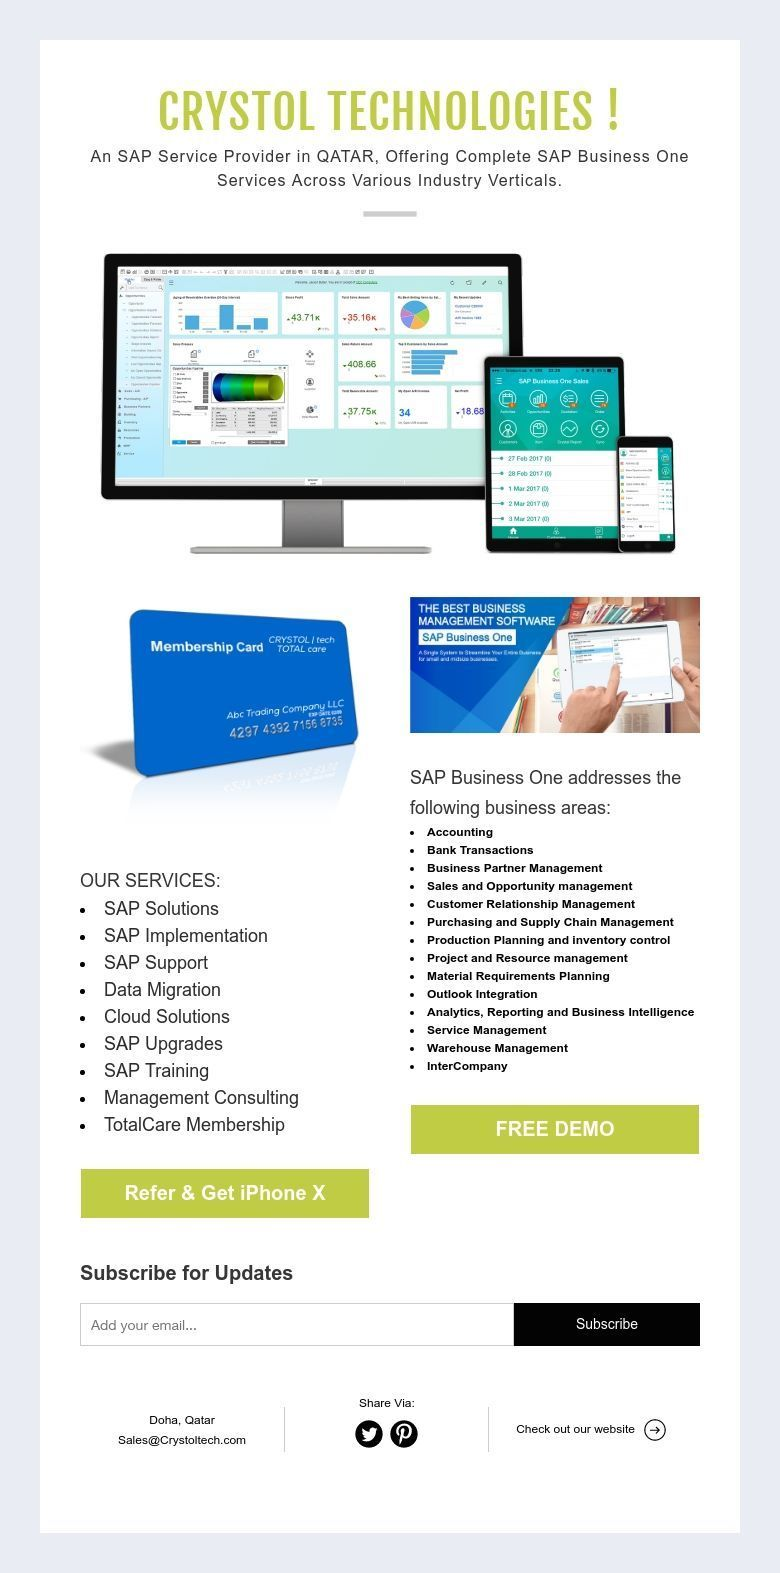 CRYSTOL TECHNOLOGIES ! An SAP Service Provider in QATAR